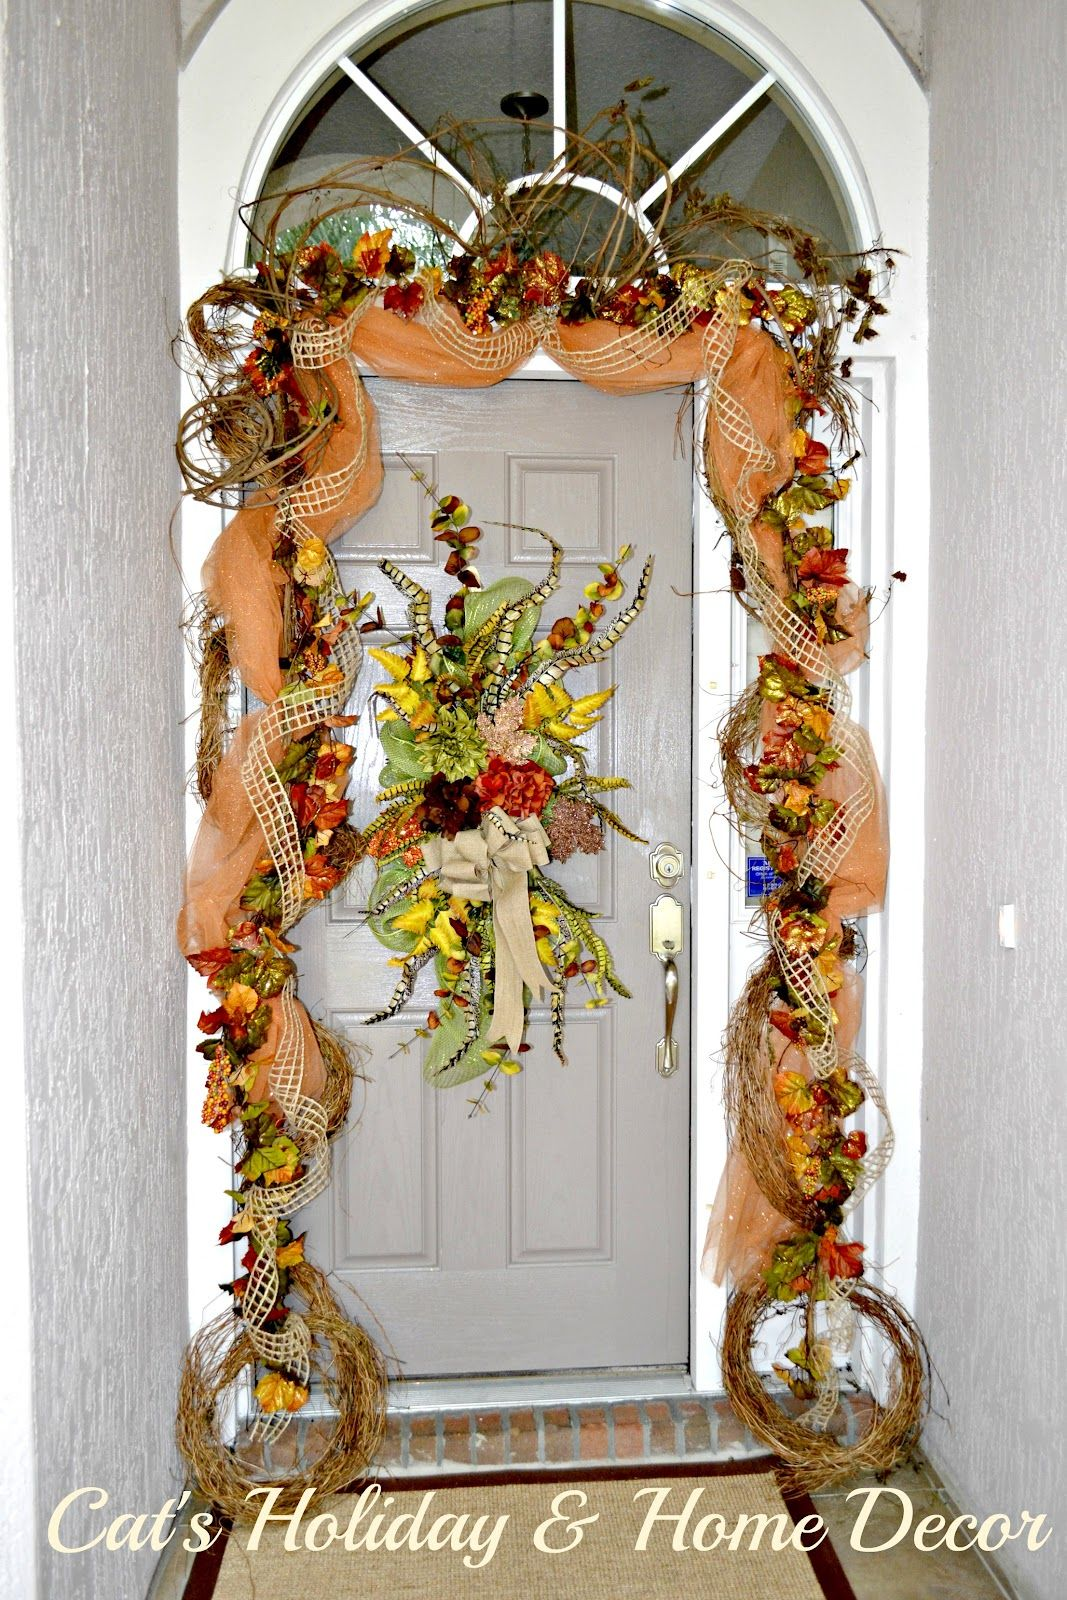 Decorating With Grapevine Garland Cat S Holiday Home Decor Musings Of Fall